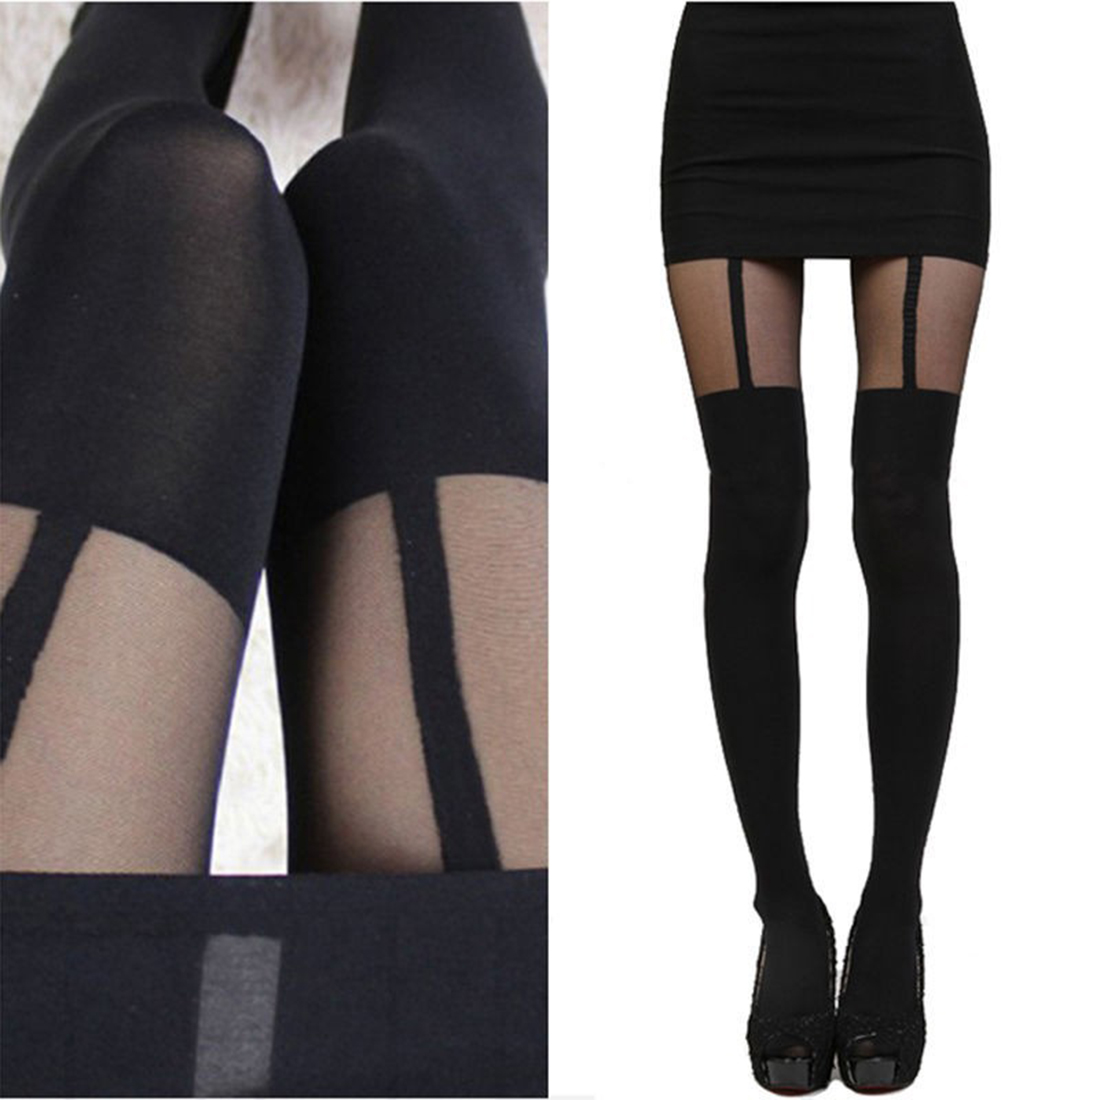 Latest Design Sheer Mock Suspender Tights Comfortable Over Knee Temptation Tights Stockings Patterned Pantyhose for Female